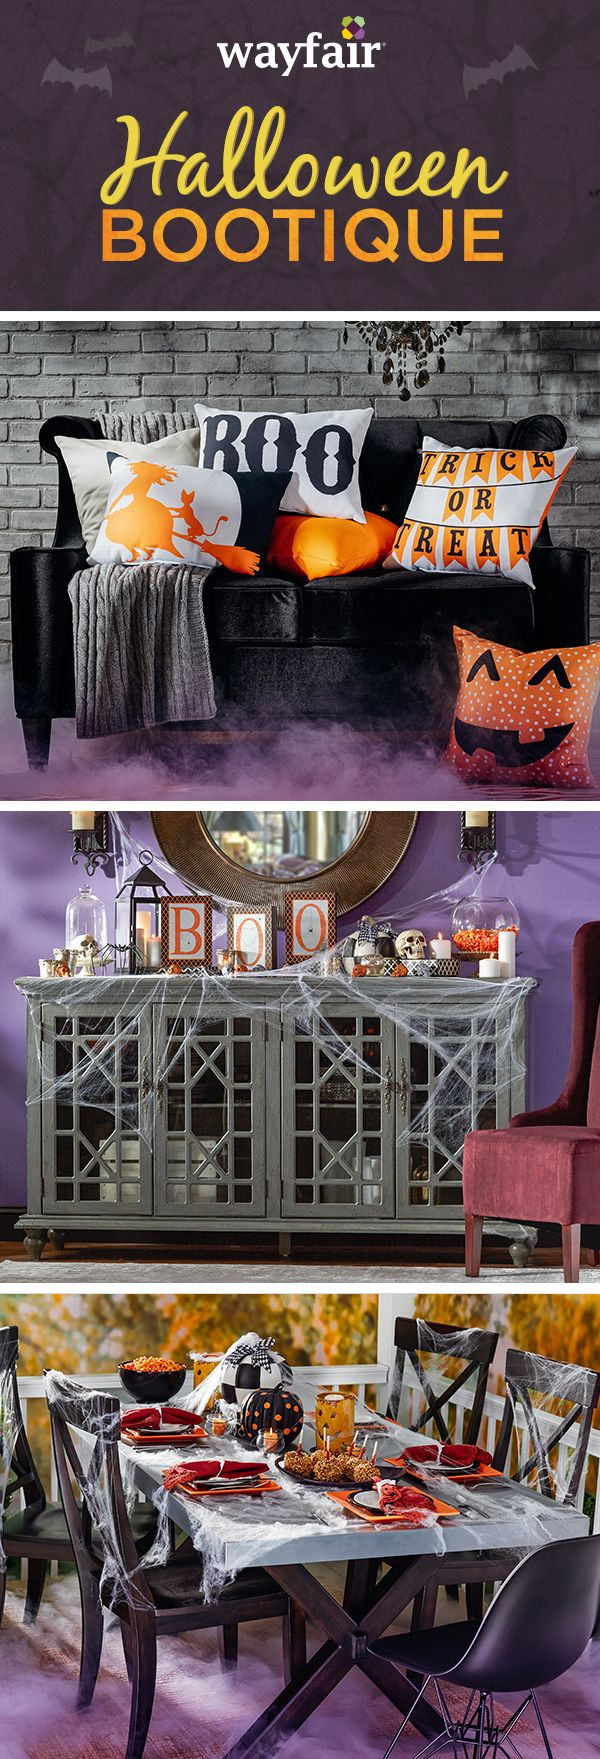 Create a spooky Halloween feel both inside and outside your home with festive and stylish decor, from inflatable ghosts to black and orange wreaths. Visit Wayfair and sign up today to get access to exclusive deals everyday up to 70% off. Free shipping on all orders over $49. Halloween sale ends 10/31/15.